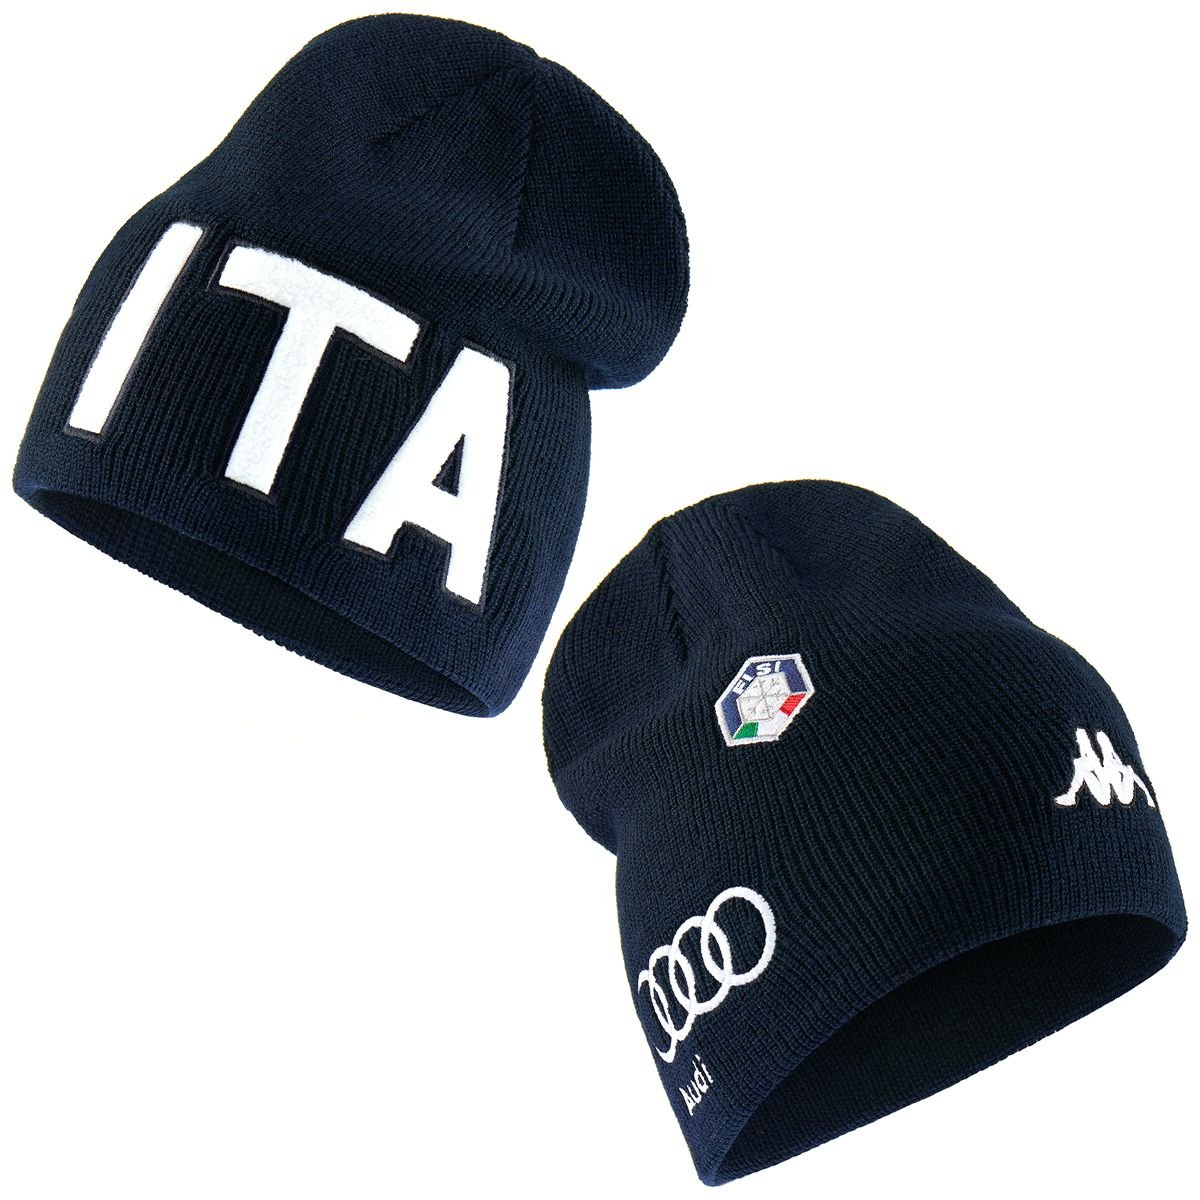 Kappa Men's 6cento Spike FISI Beret 302MS30